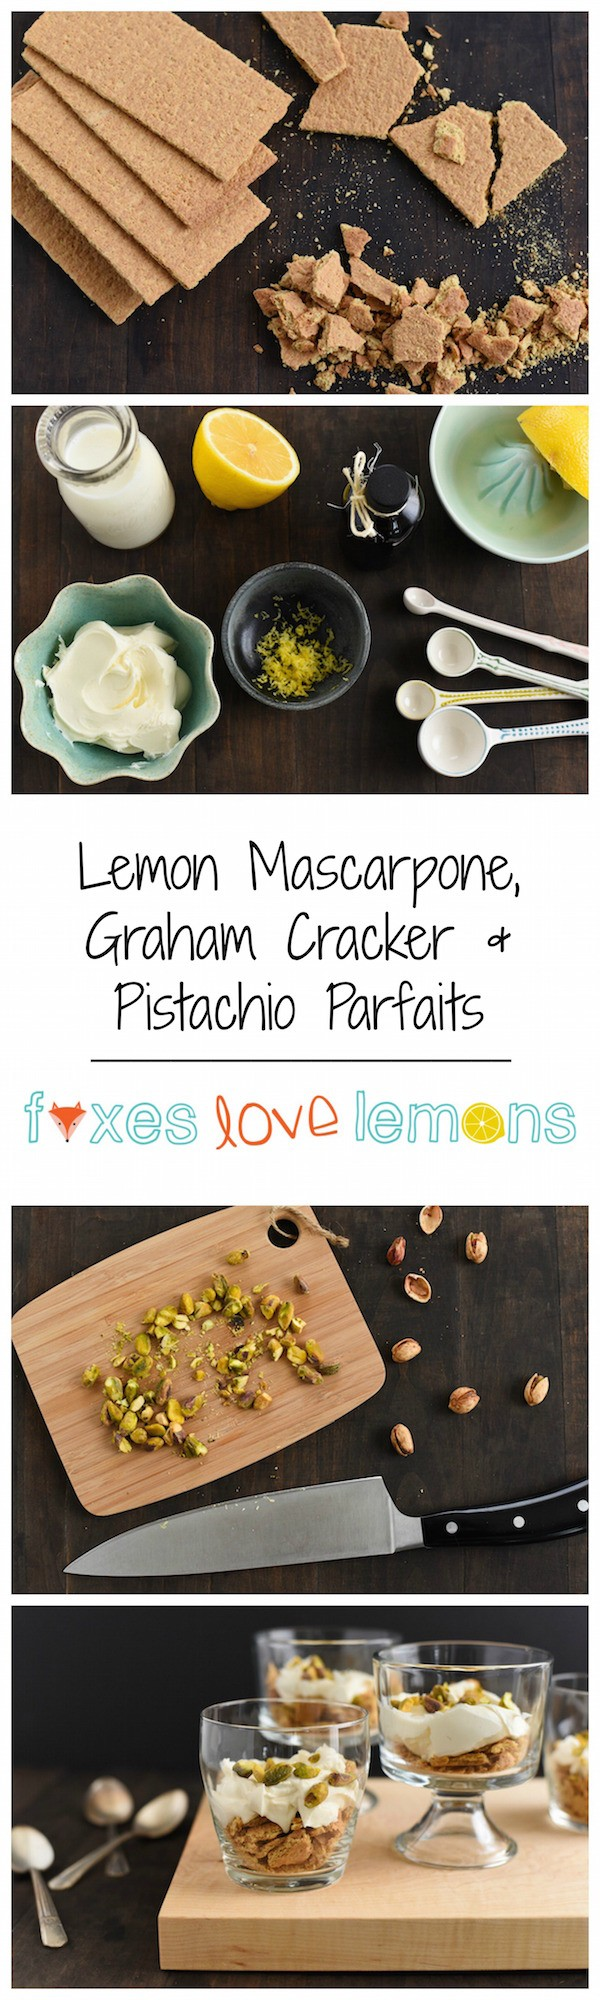 Lemon Mascarpone, Graham Cracker & Pistachio Parfaits - A quick dessert featuring the subtle and sweet flavors of lemon-infused mascarpone cheese, graham crackers and pistachios. | foxeslovelemons.com